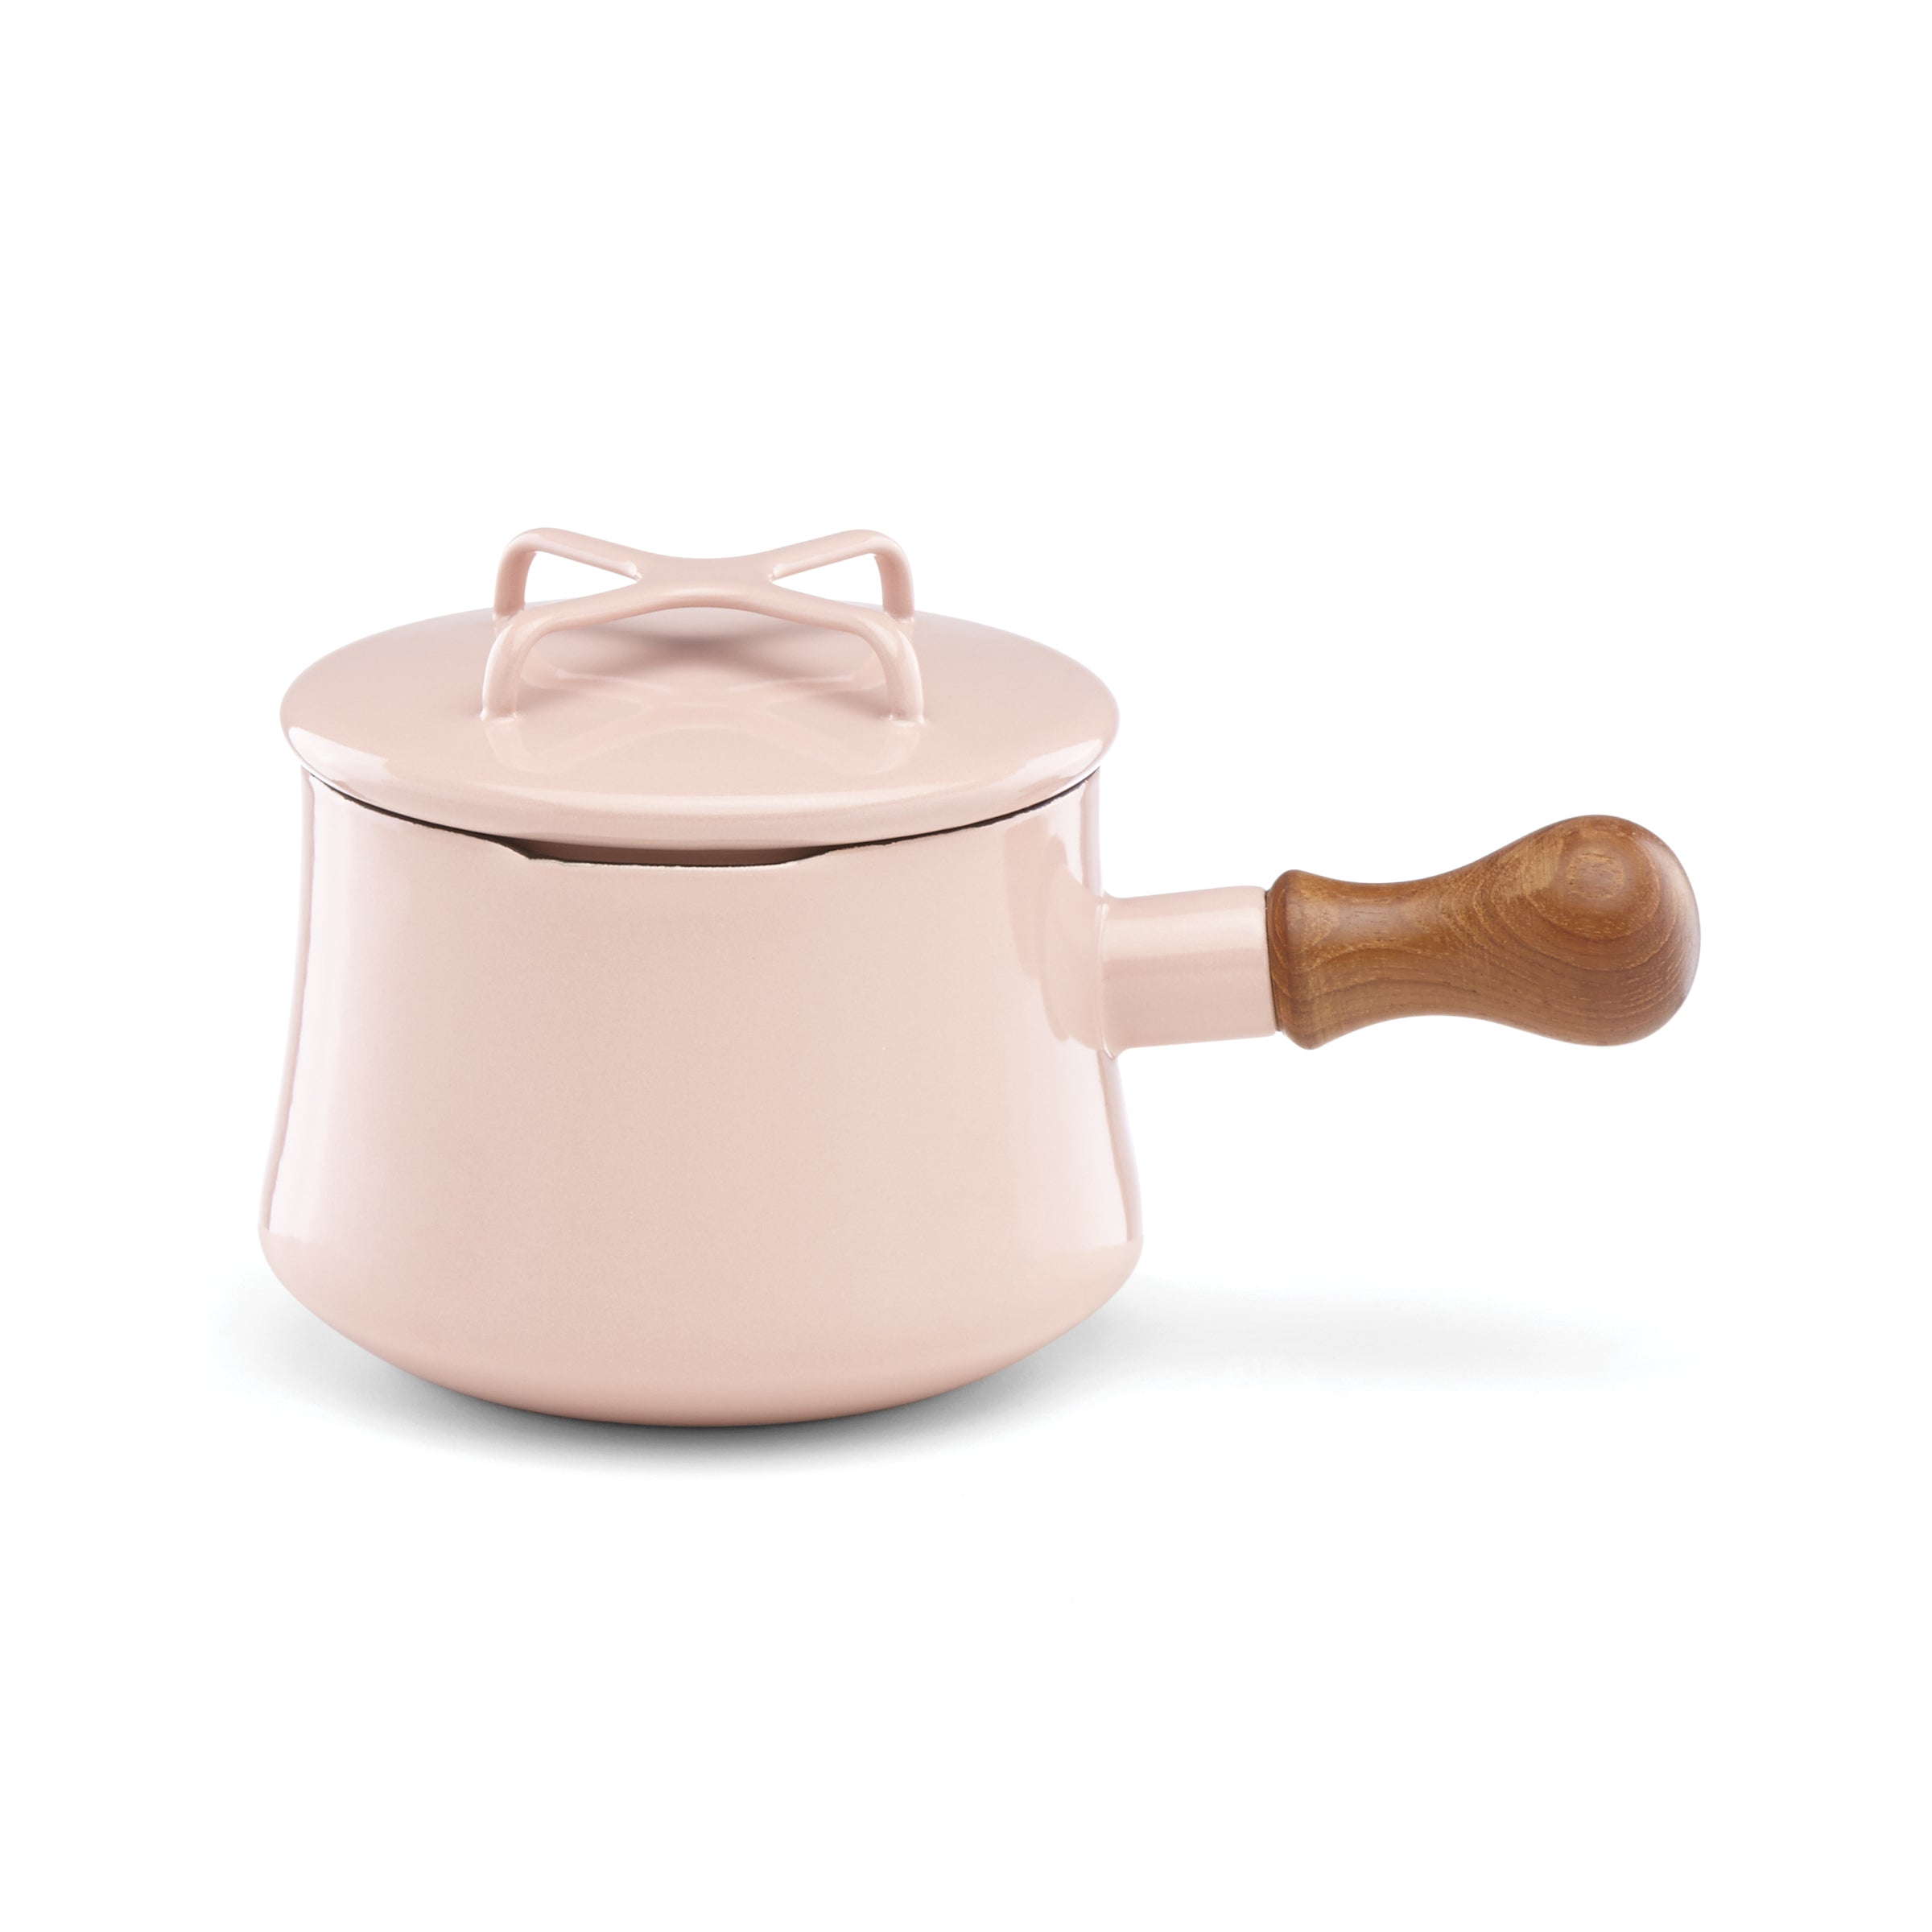 Kobenstyle Pink Hot Cocoa Pot 1qt